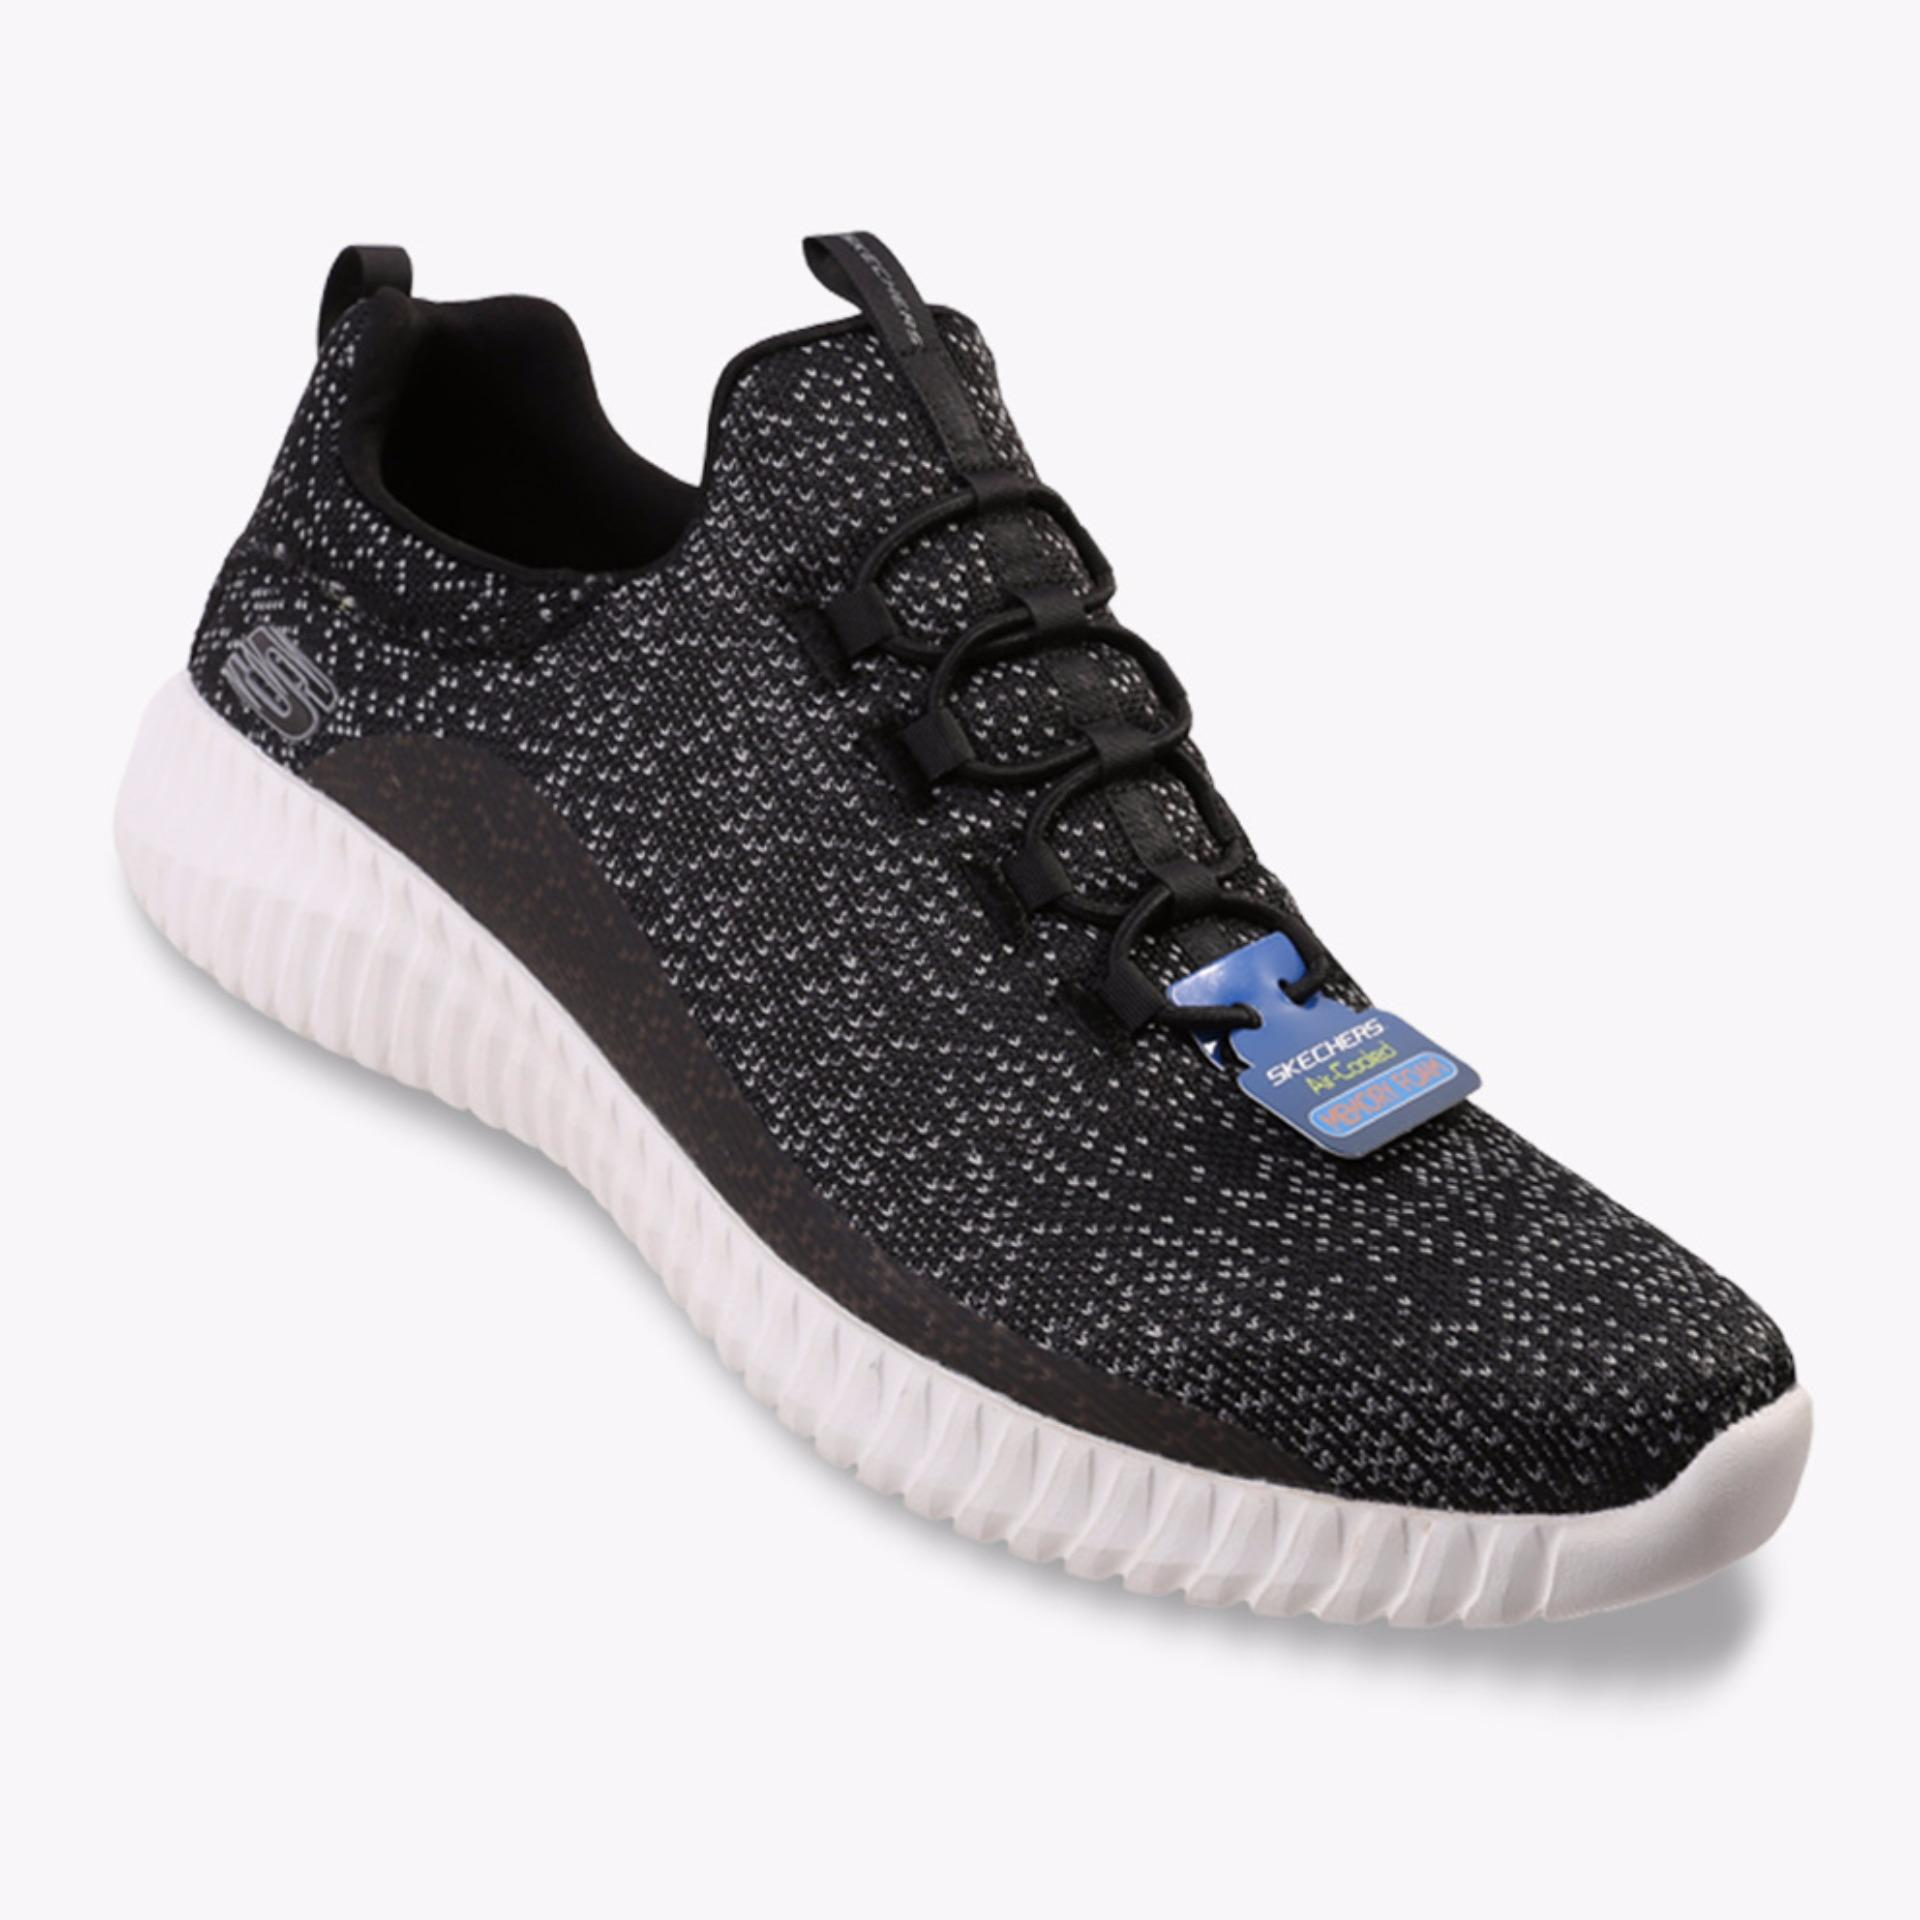 Top 10 Skechers Elite Flex Muzzin Men S Sneakers Shoes Hitam Online